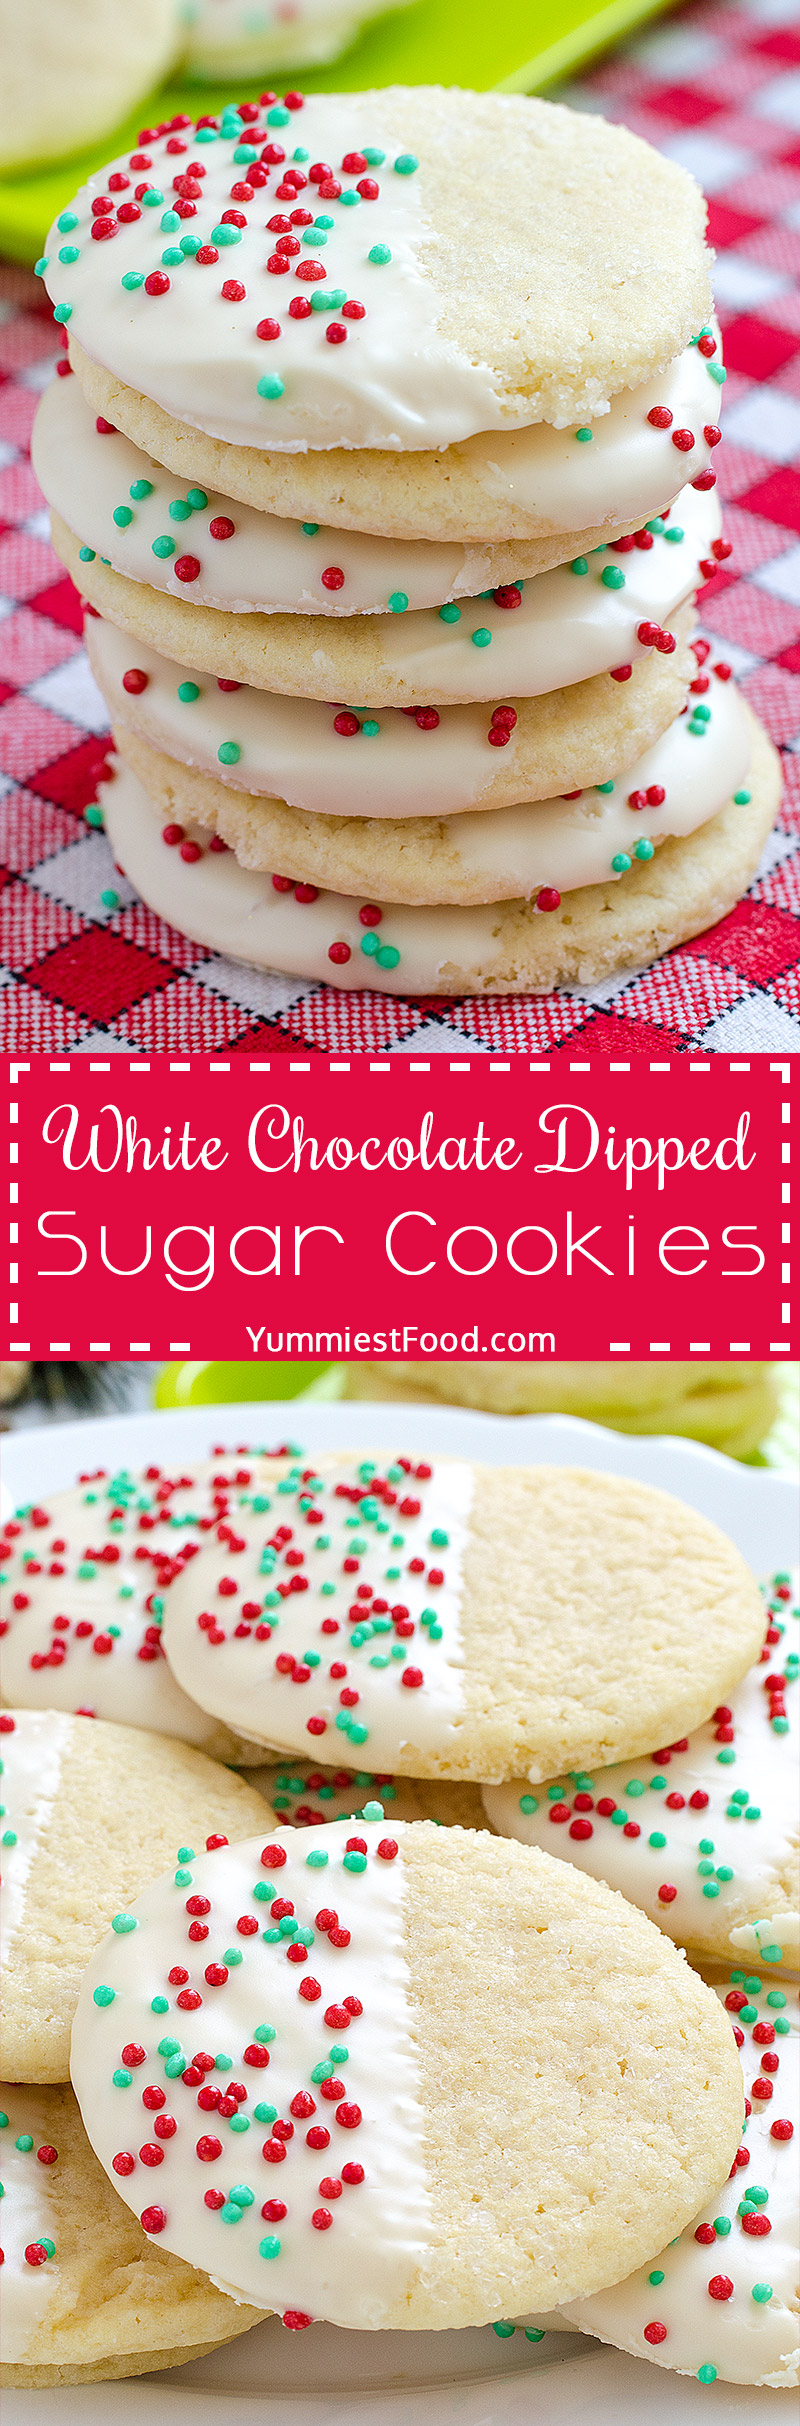 White Chocolate Dipped Sugar Cookies Recipe